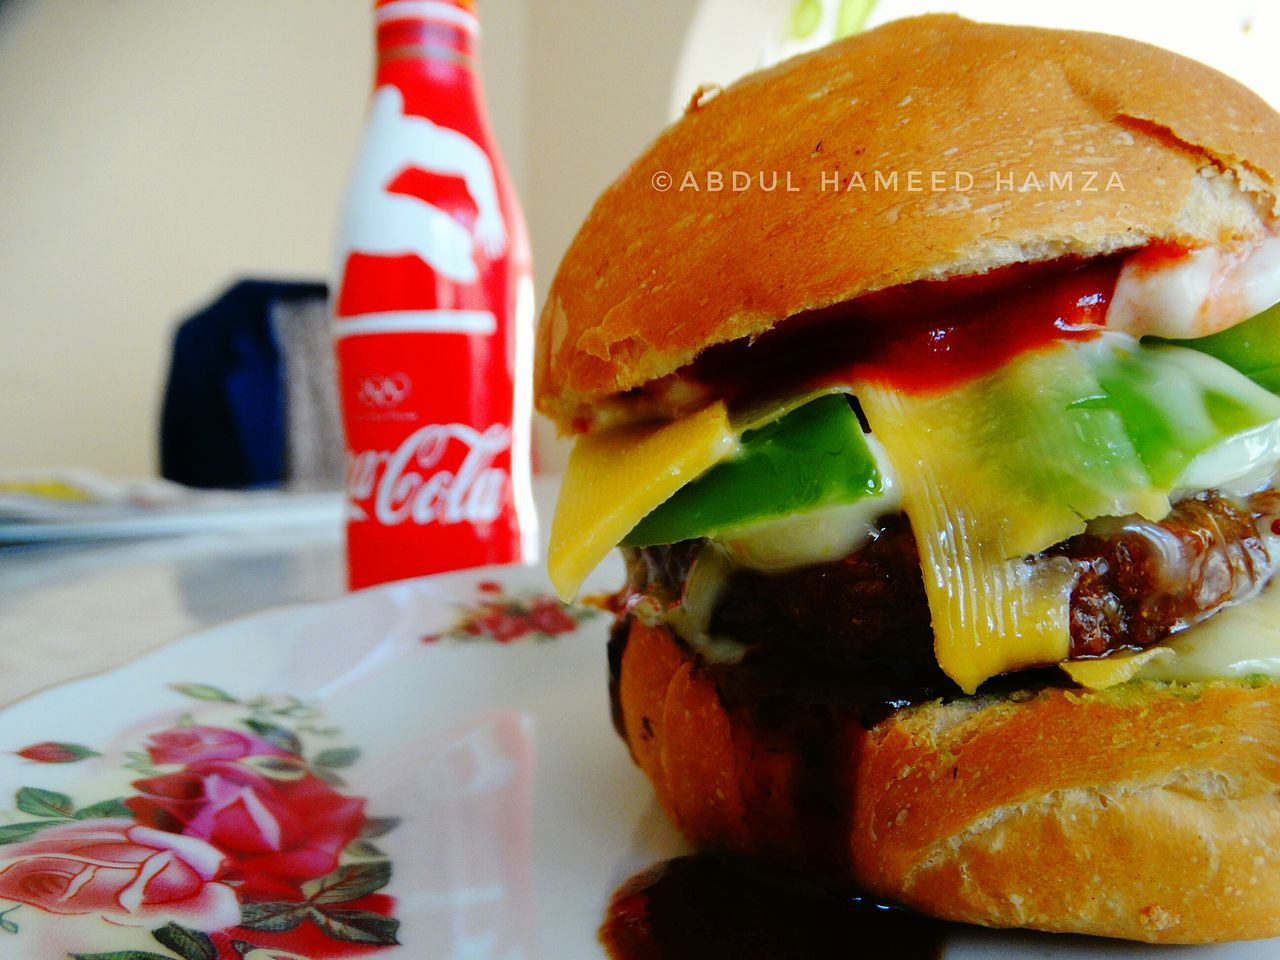 Lunch anyone? Food Food And Drink Close-up Ready-to-eat Foodiegram Foodies Foodie Food Photography BurgerCape Town Macro Photography Clarity Burgerlove Burgerlover Cocacola Coke Bottle Coca-Cola ❤ Coca Cola ✌ Coca Cola South Africa South Africa Colourful Colorful Hungry BurgerLovers Burger Lover